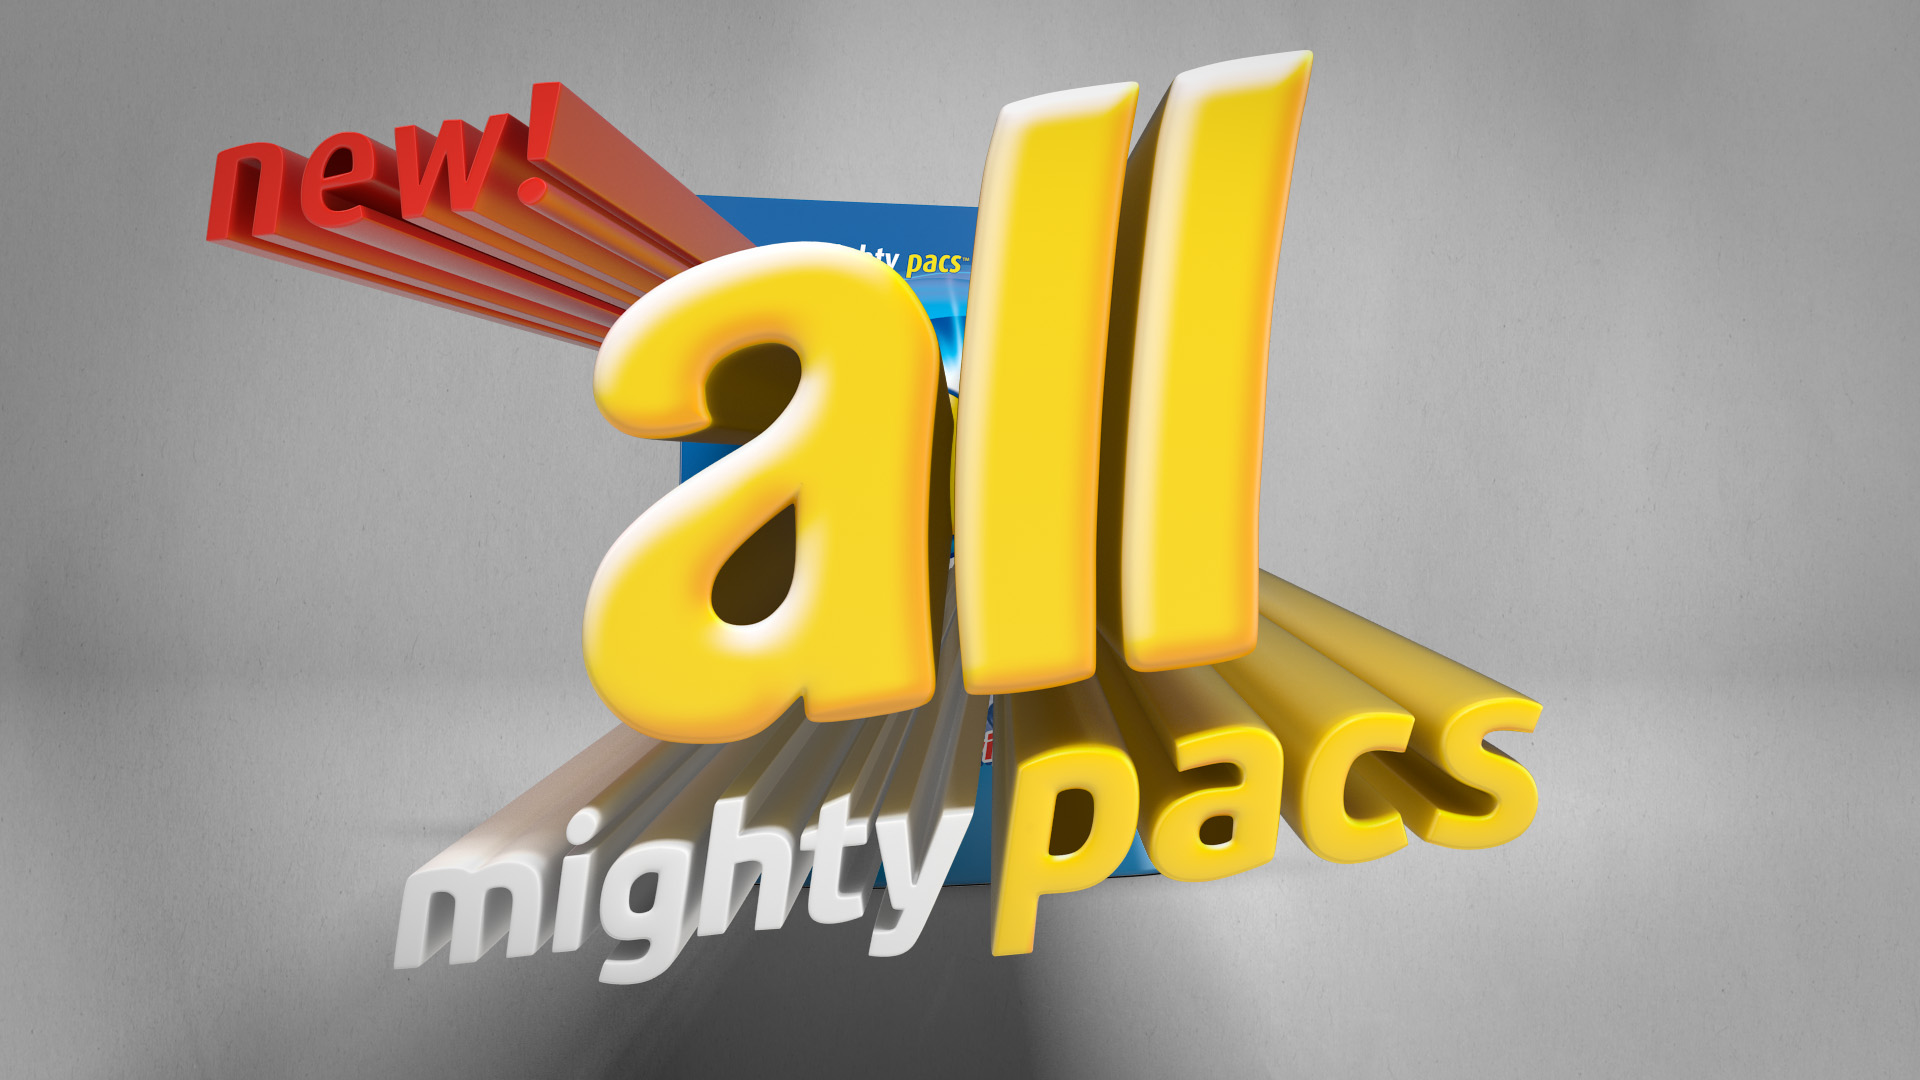 all_mightypacks_image01